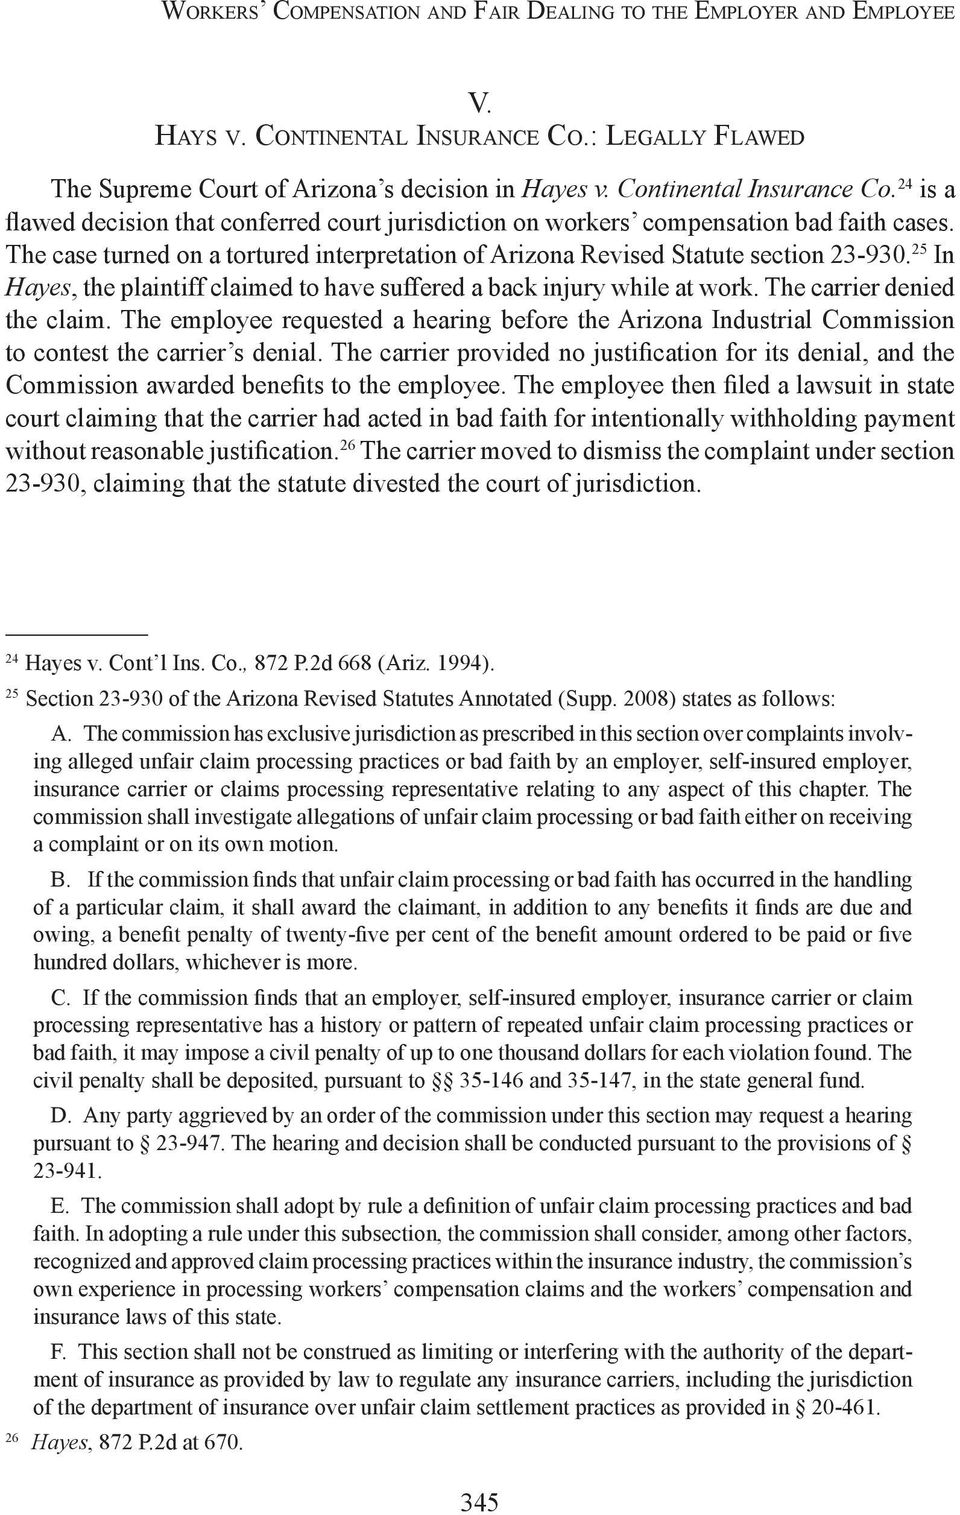 The case turned on a tortured interpretation of Arizona Revised Statute section 23-930. 25 In Hayes, the plaintiff claimed to have suffered a back injury while at work. The carrier denied the claim.